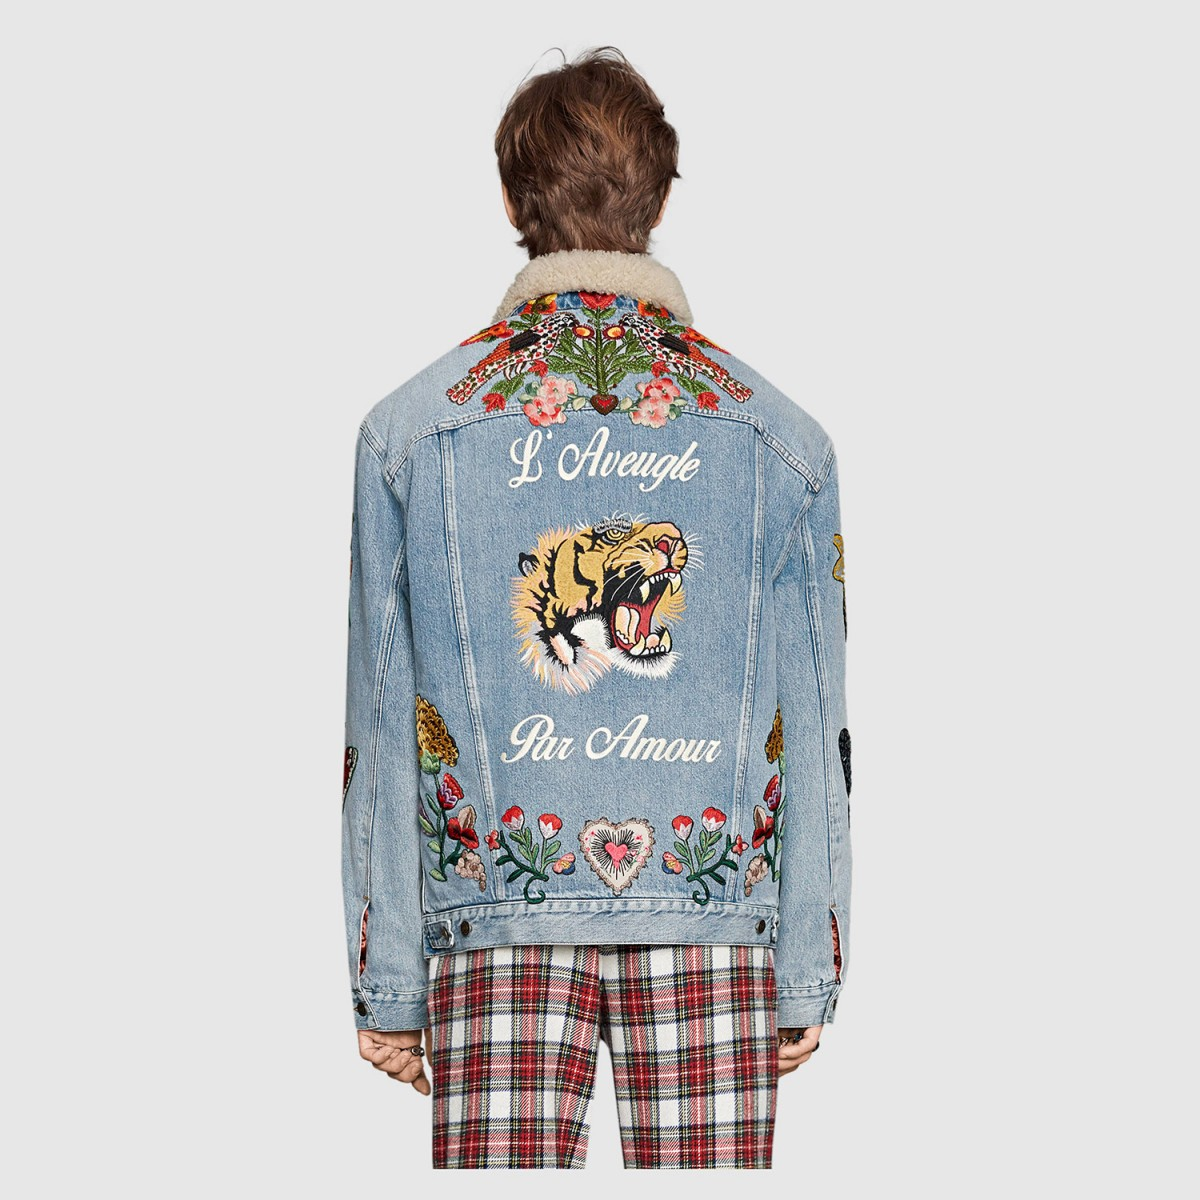 gucci-embroidered-denim-shearling-jacket-3-1200x1200